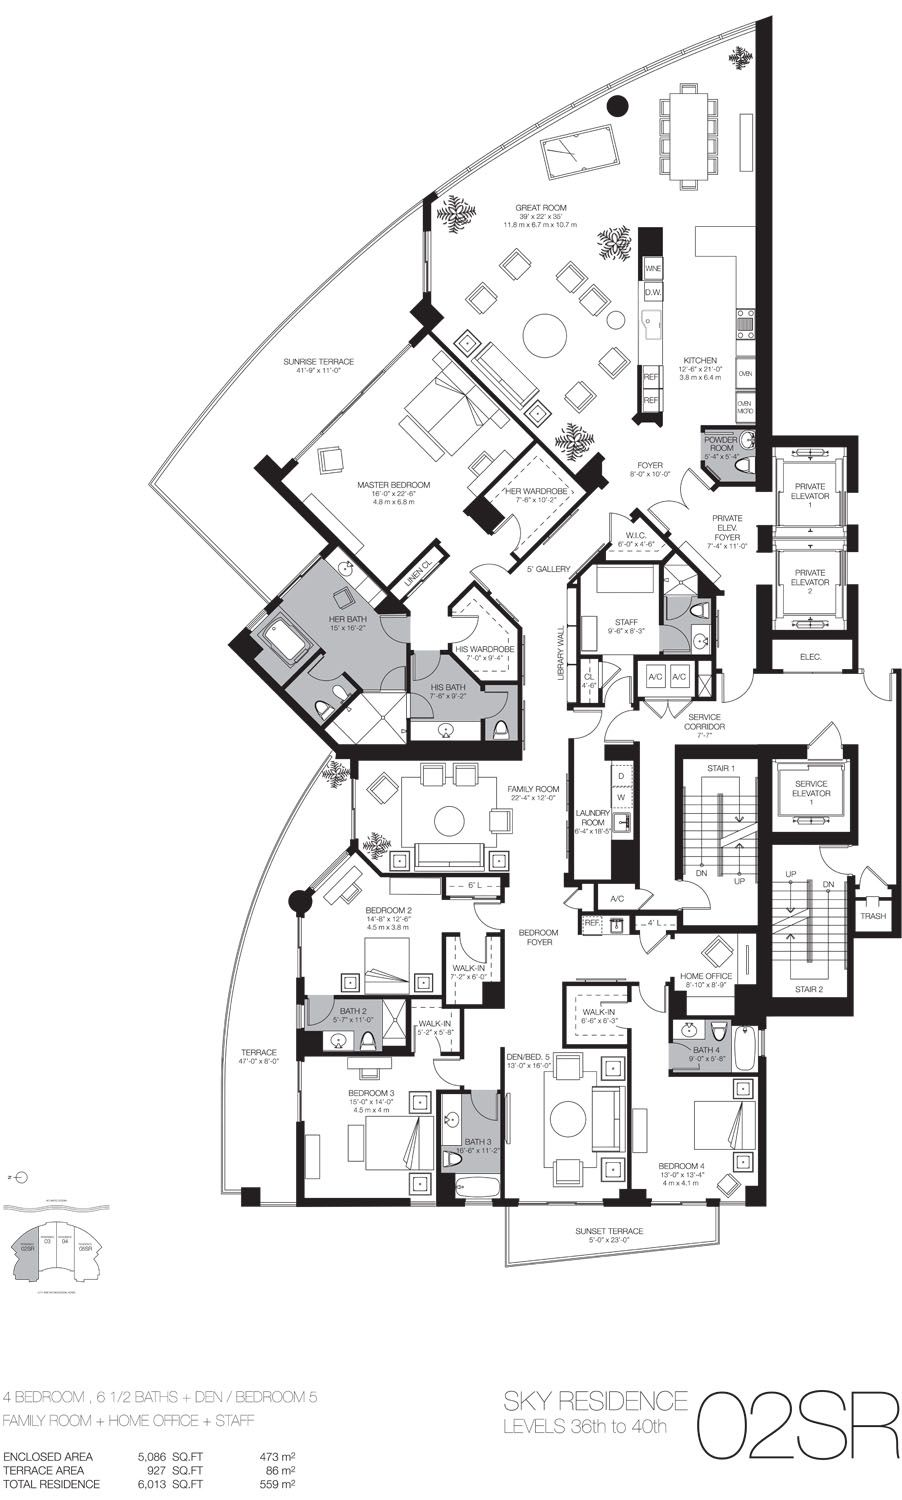 Luxury beach home floor plans miami luxury real estate for Miami mansion floor plans